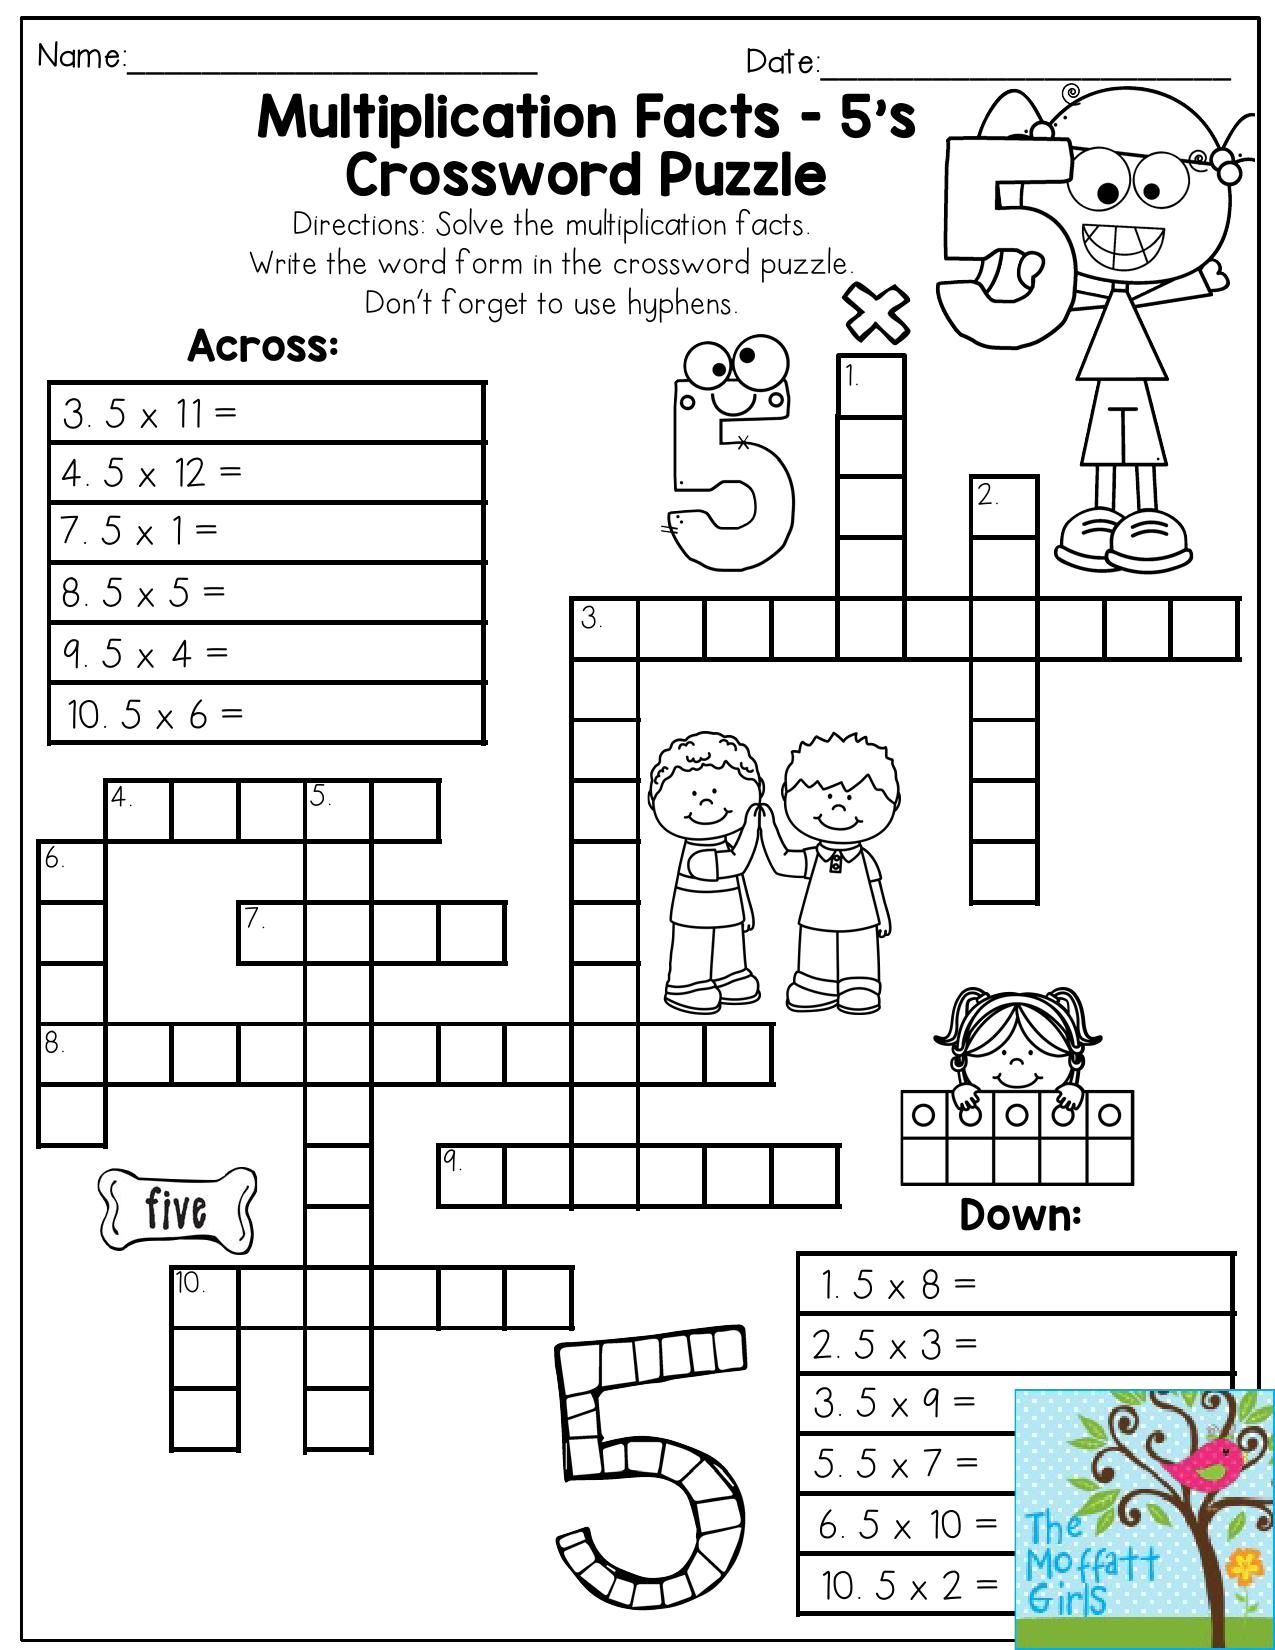 Multiplication Facts Crossword Puzzle- Third Grade Students Love - Grade 2 Crossword Puzzles Printable